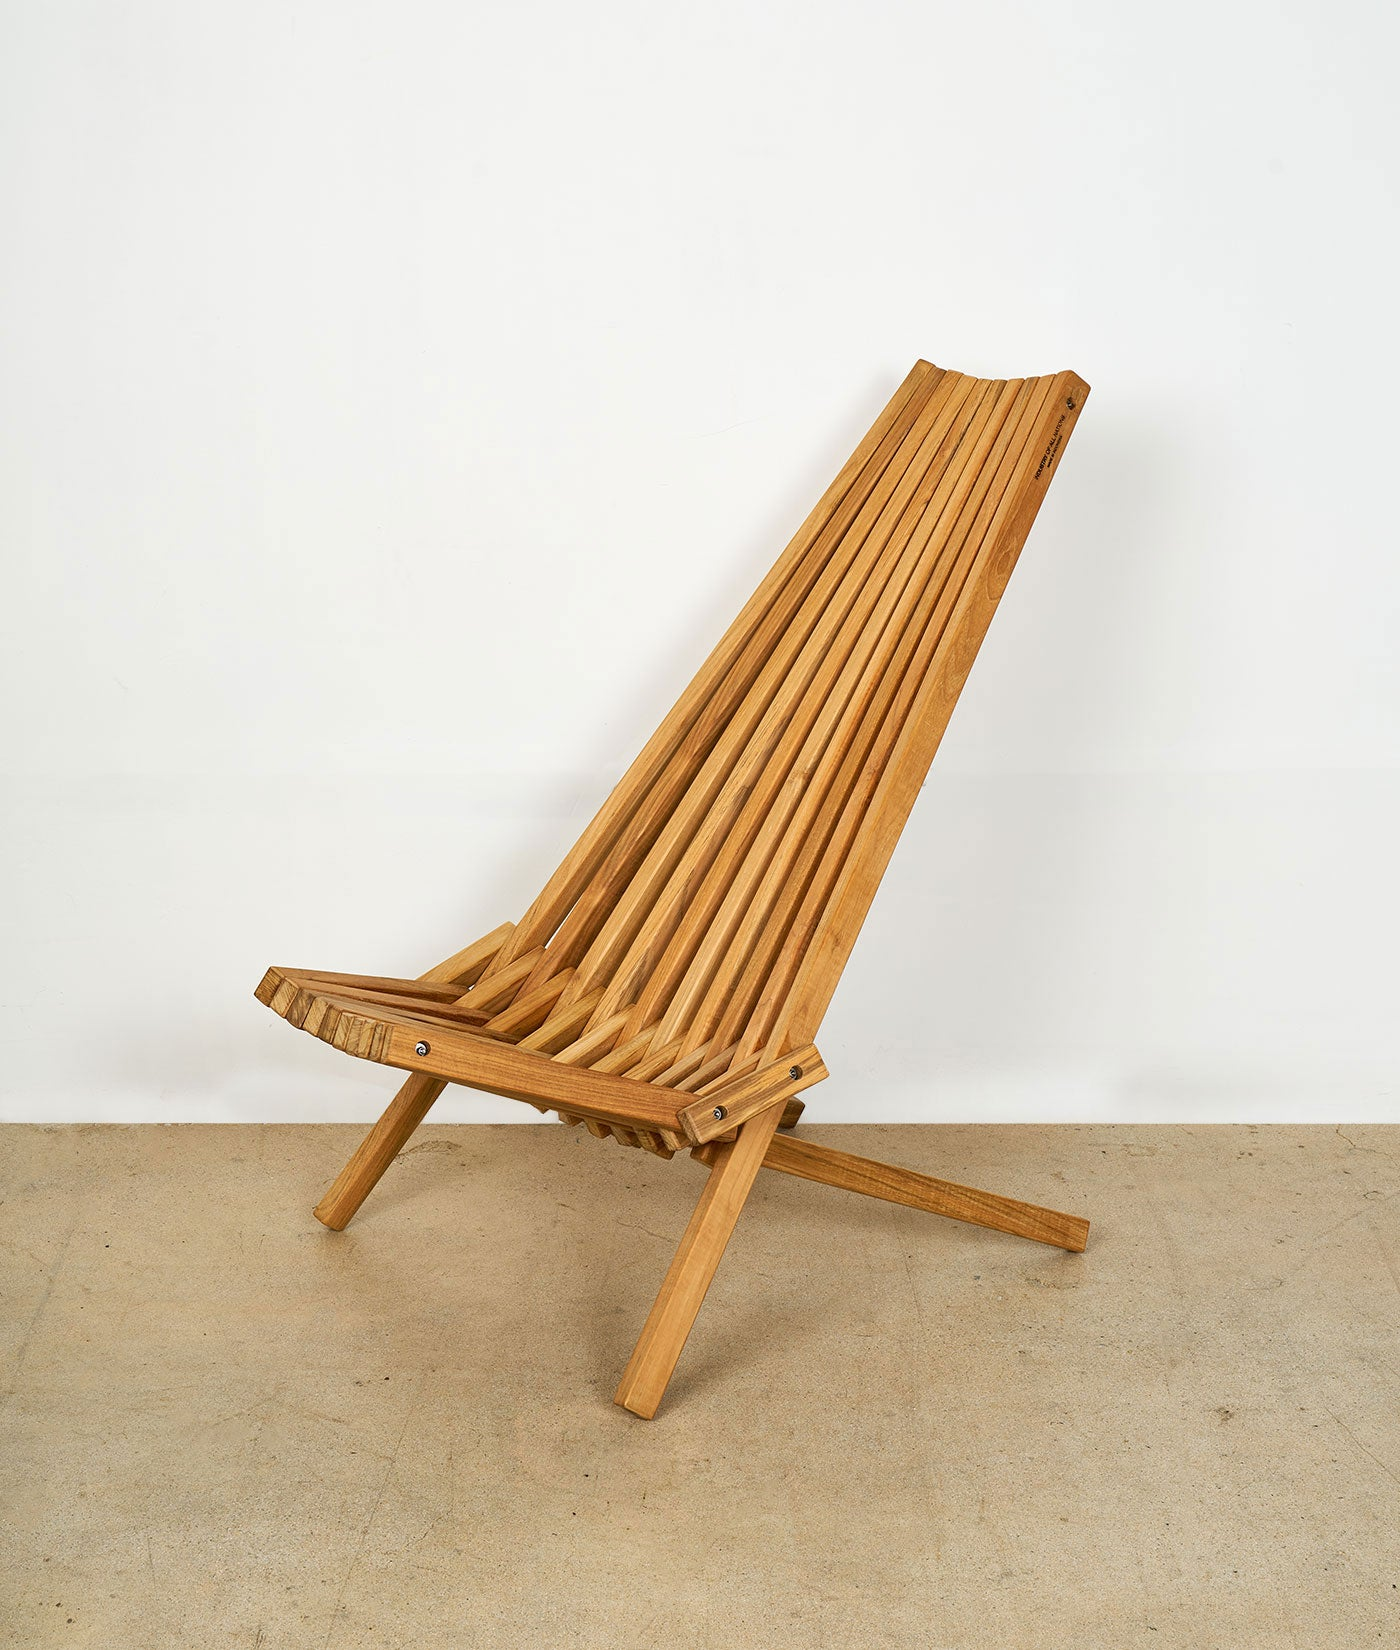 Industry of All Nations Panamericana Teak Wood Folding Chair